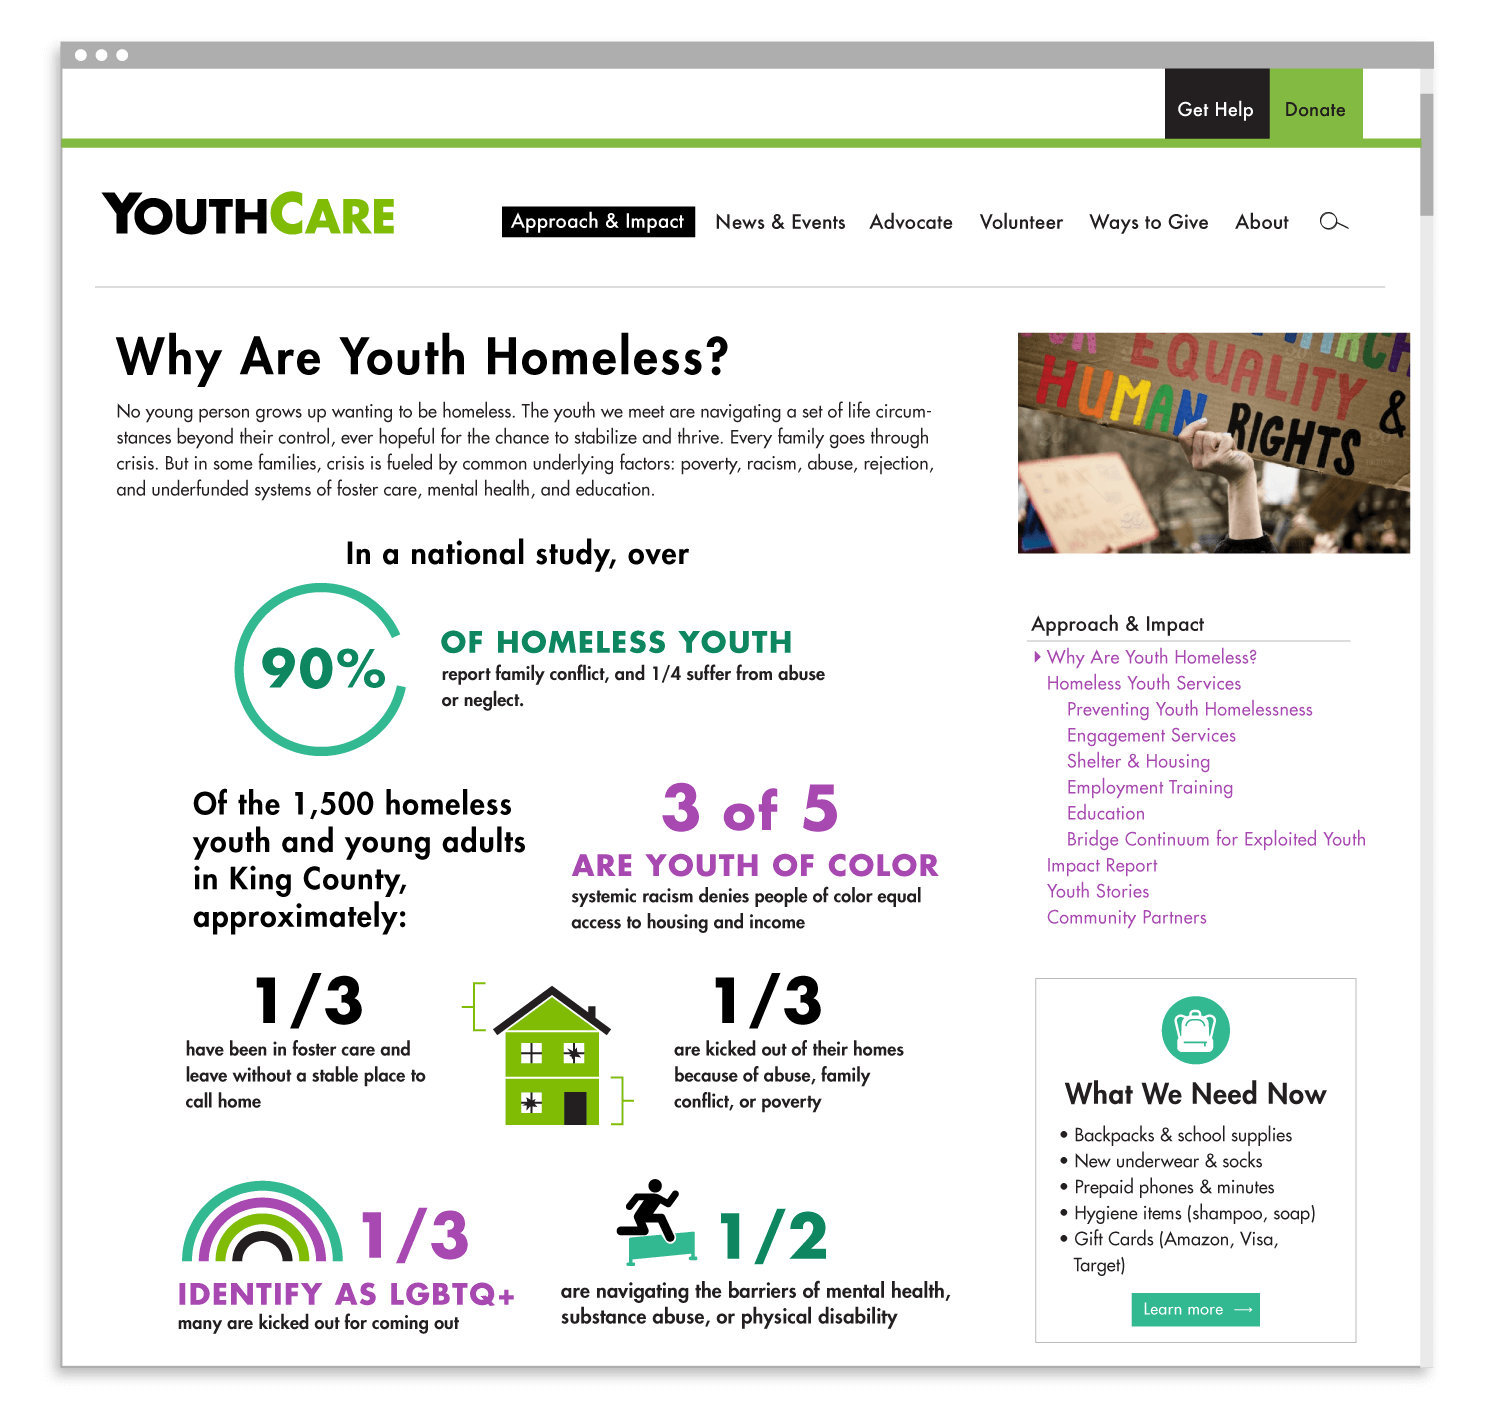 Kat-Marshello-YouthCare-Website-Design-HomelessYouth.png